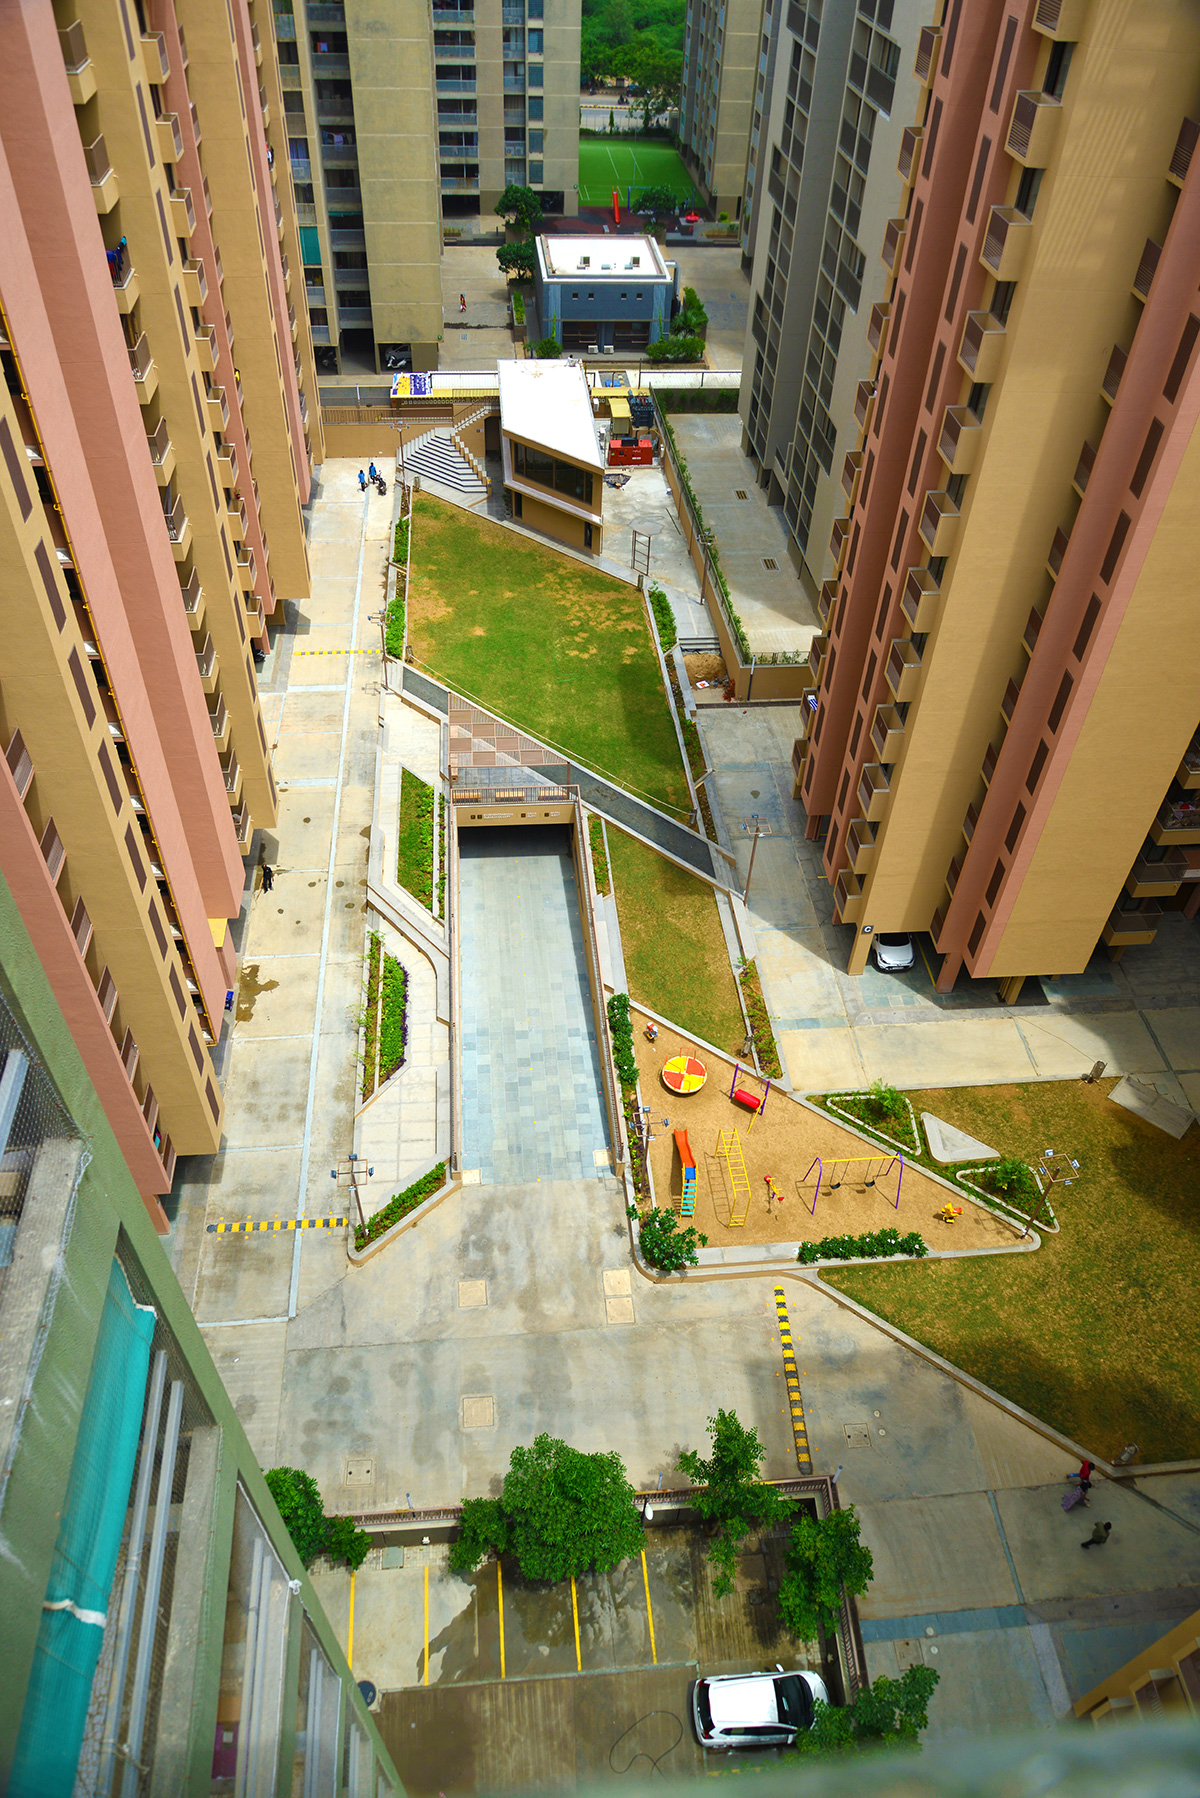 Real estate projects in Ahmedabad